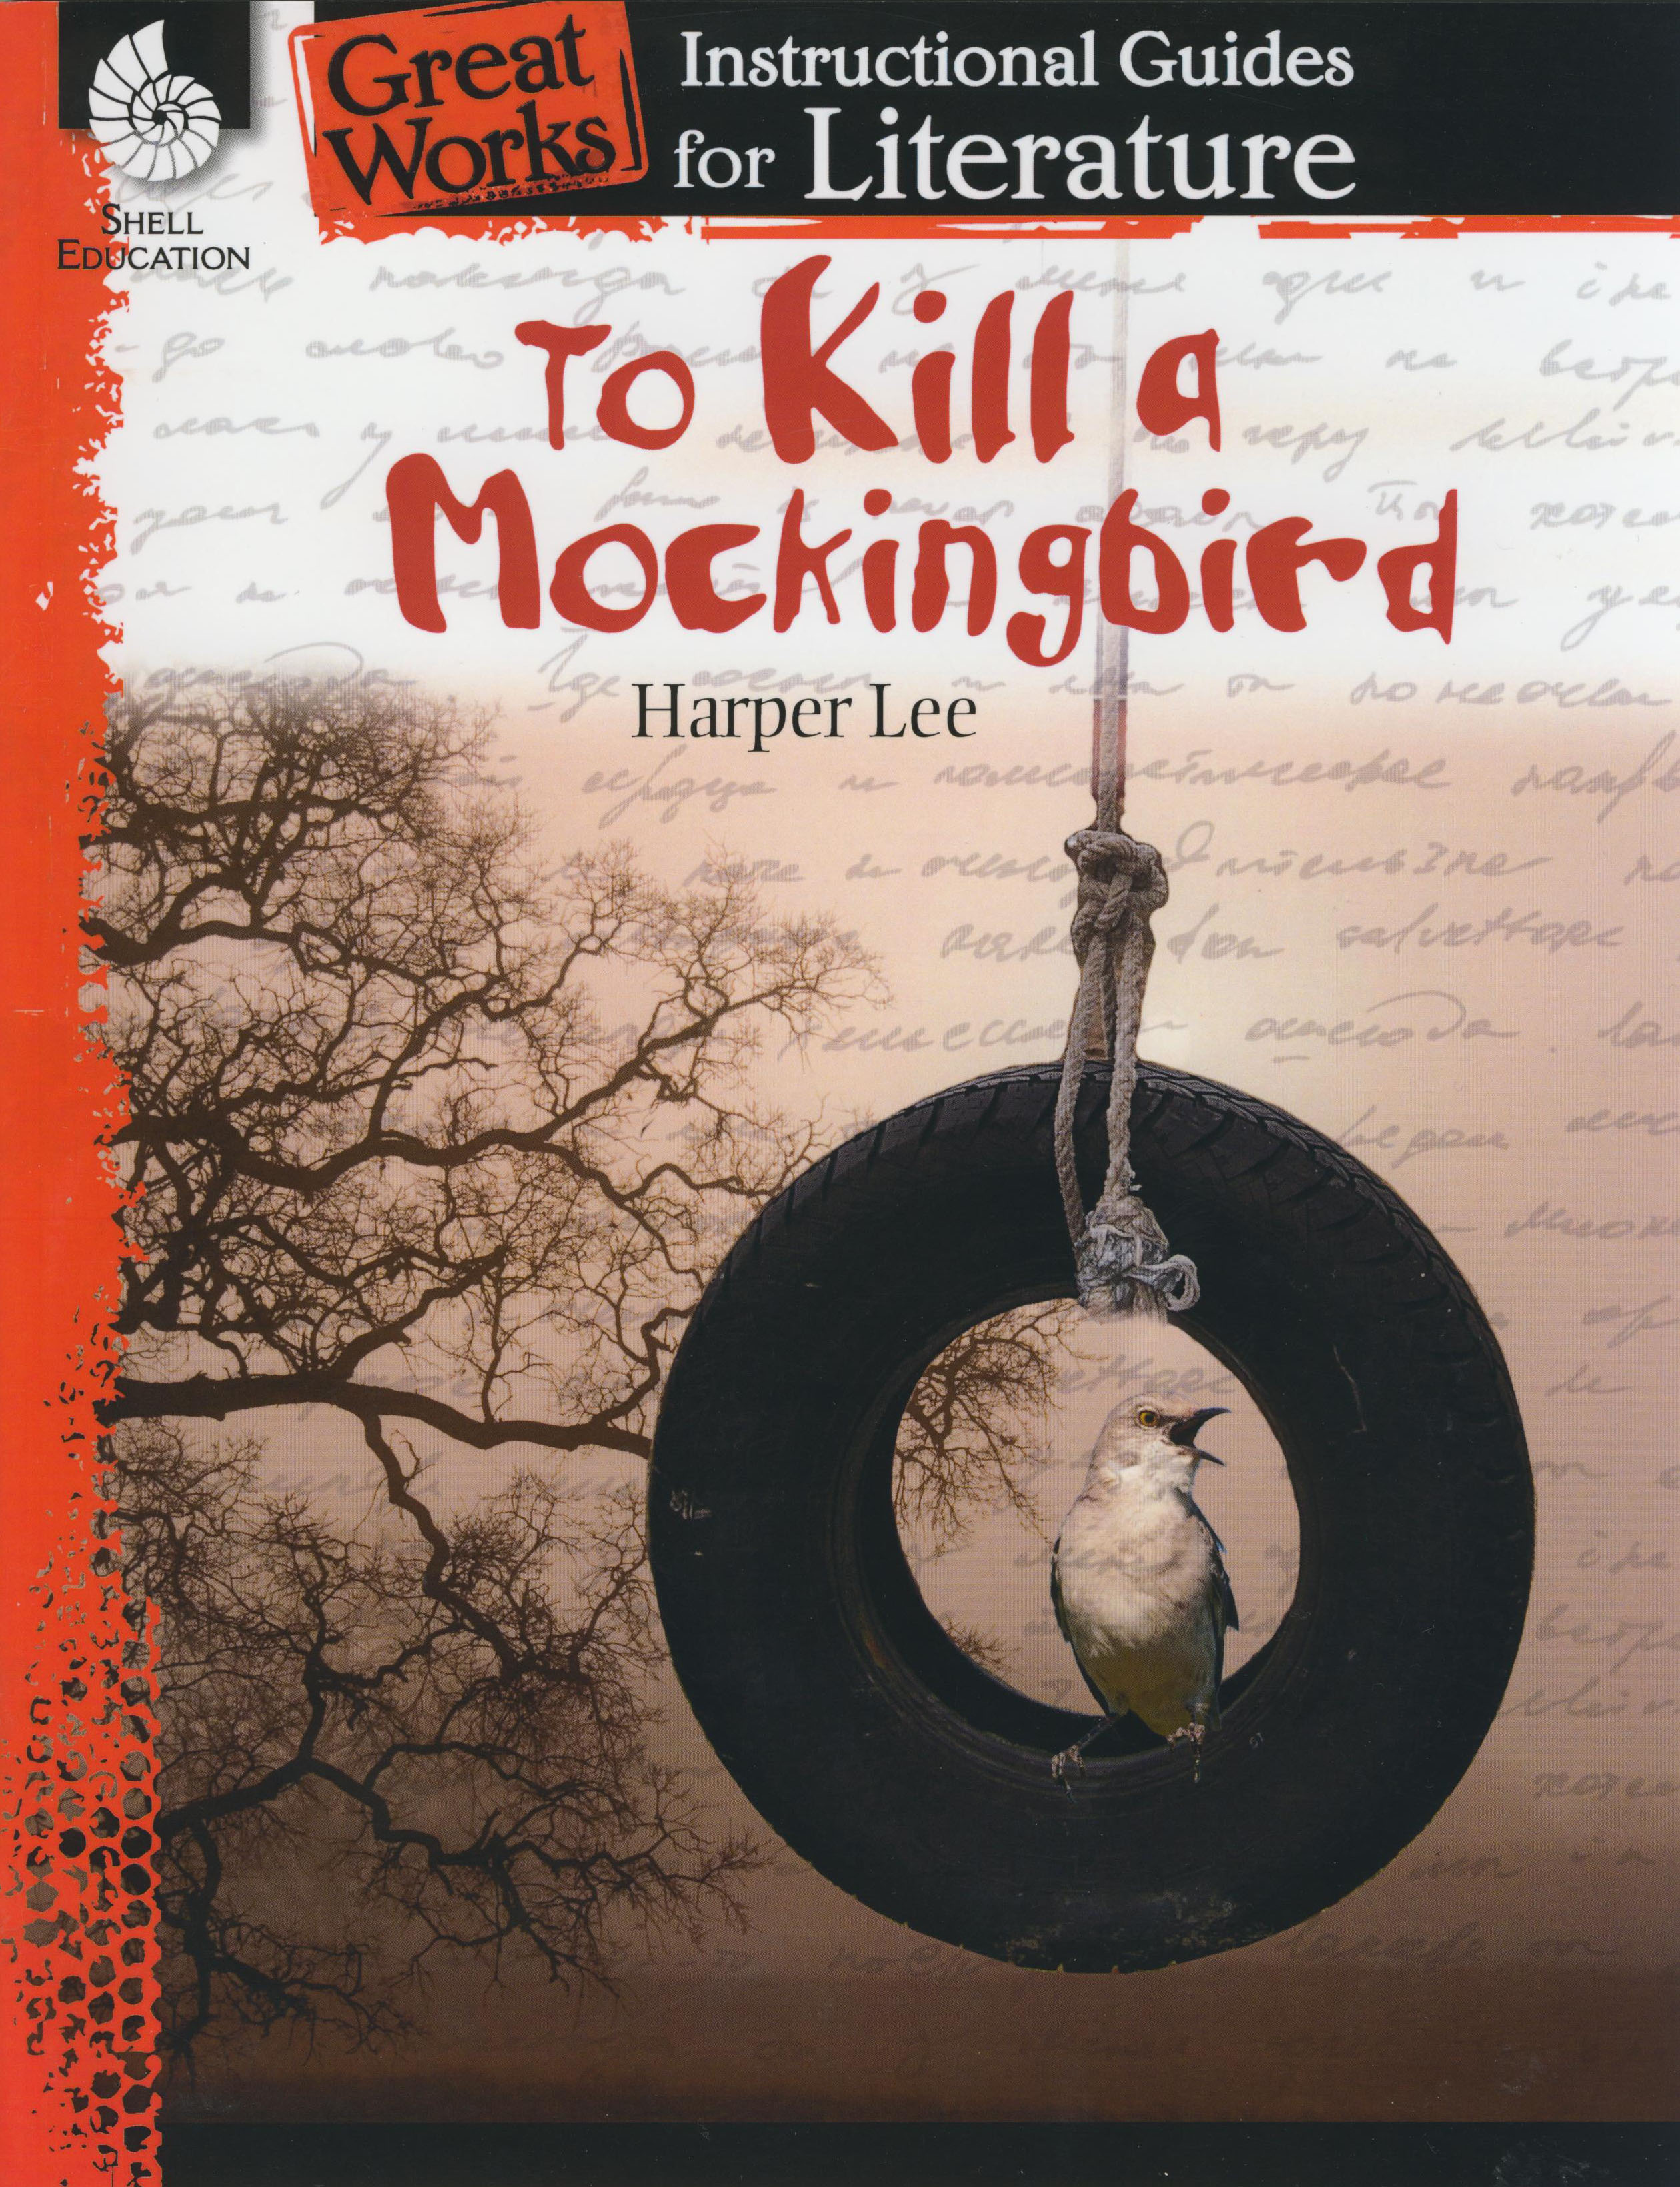 Great Works Instructional Guide for Literature: To Kill a Mockingbird